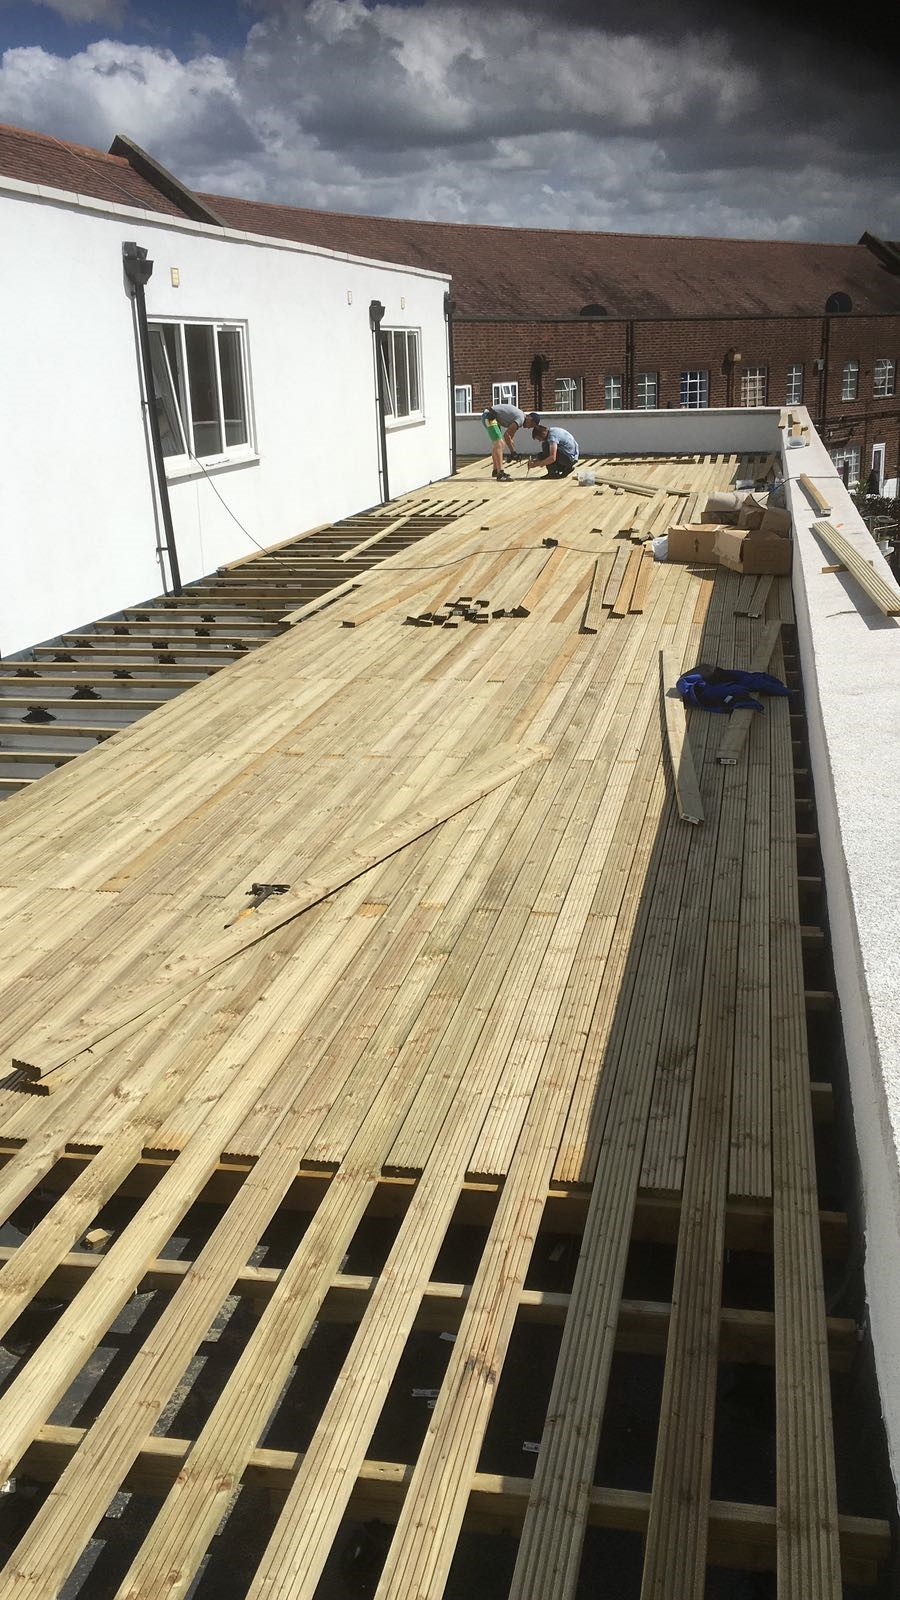 An image of a decking installation in progress